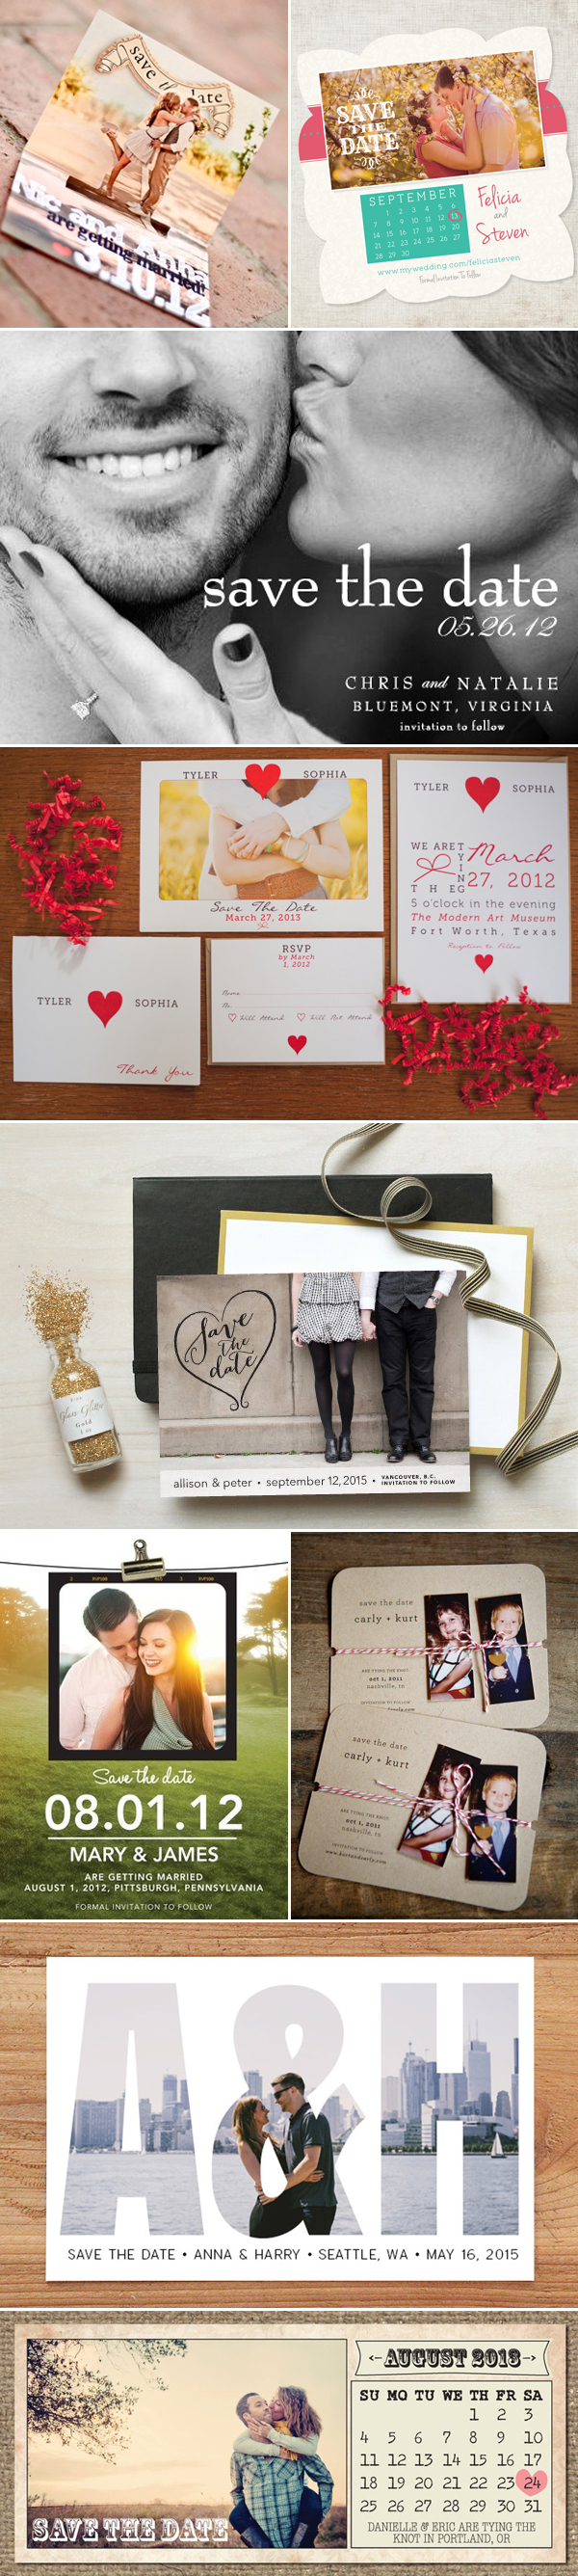 save-the-date02-creative